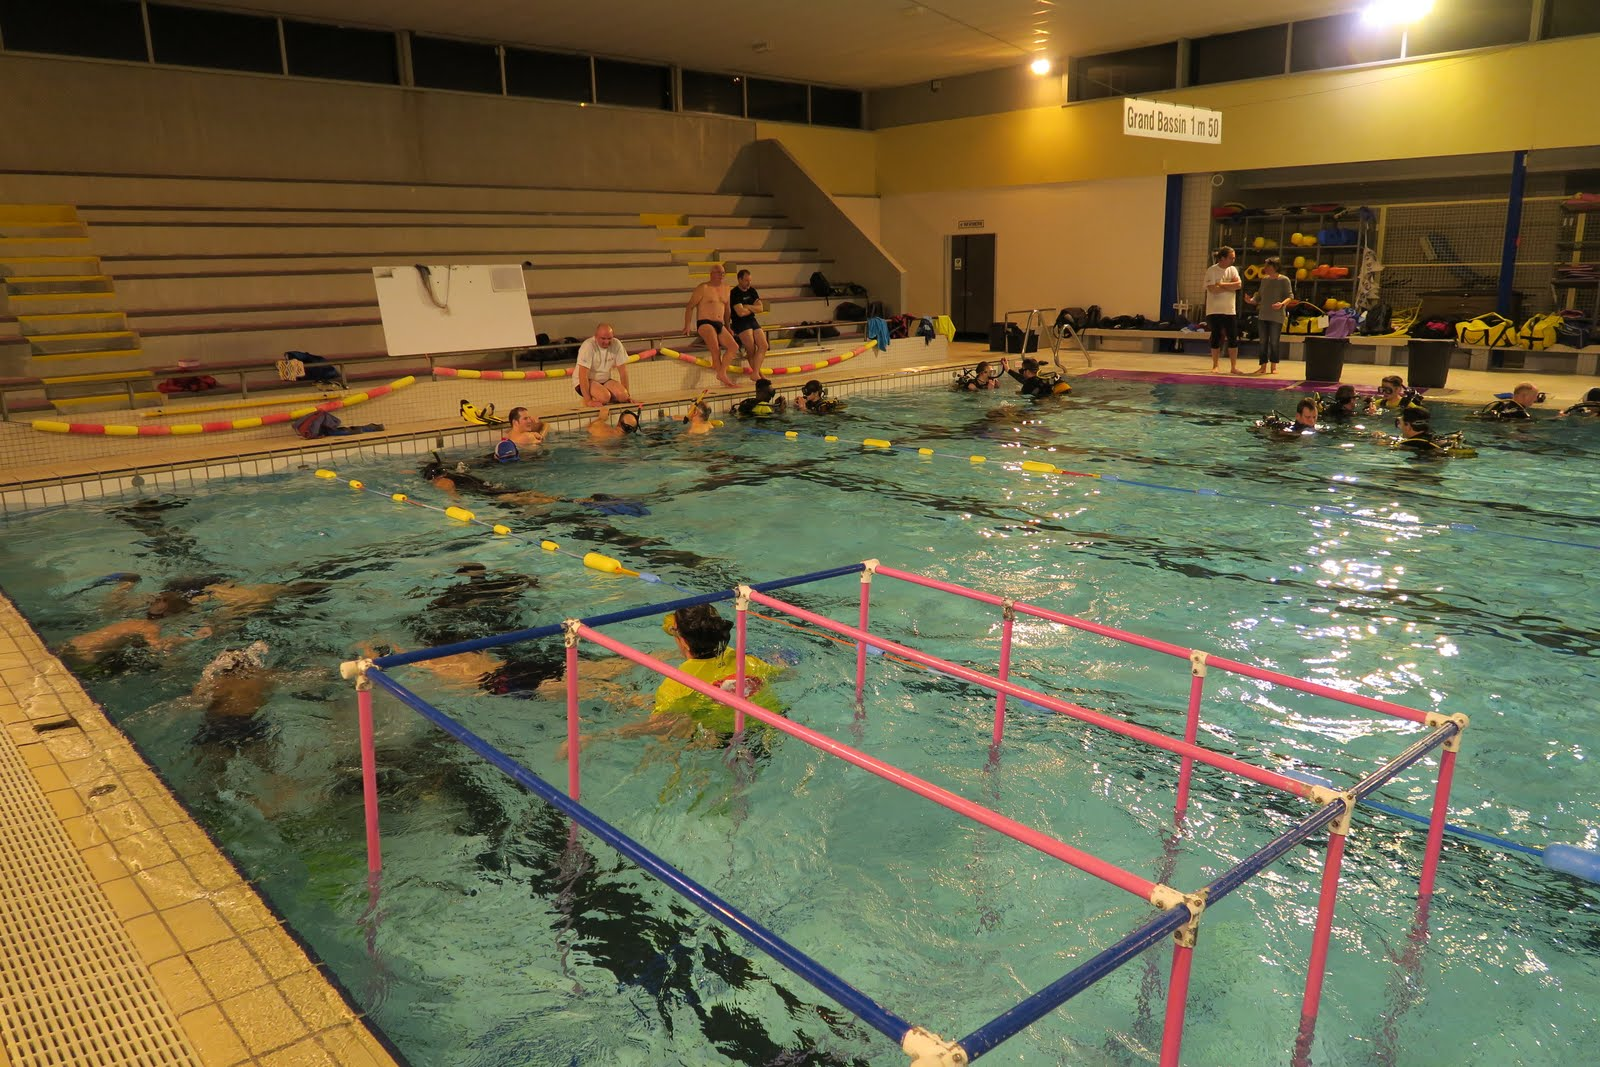 Club subaquatique des v n tes club de plong e sur vannes for Piscine kercado